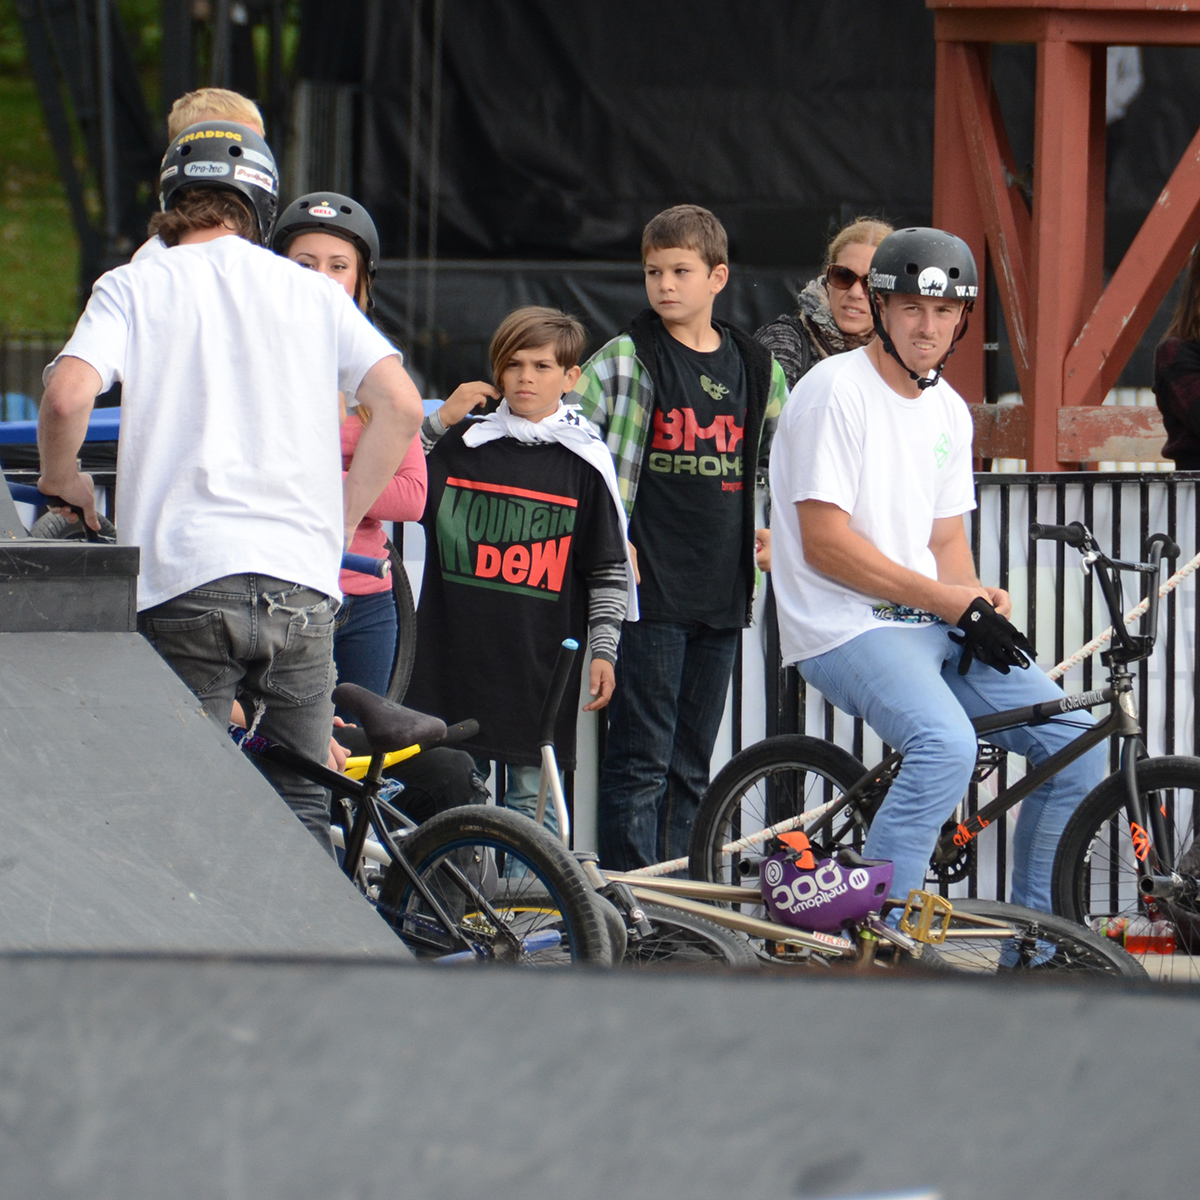 BMX Grom spectators at BMX Dew Tour Am Series in Toronto